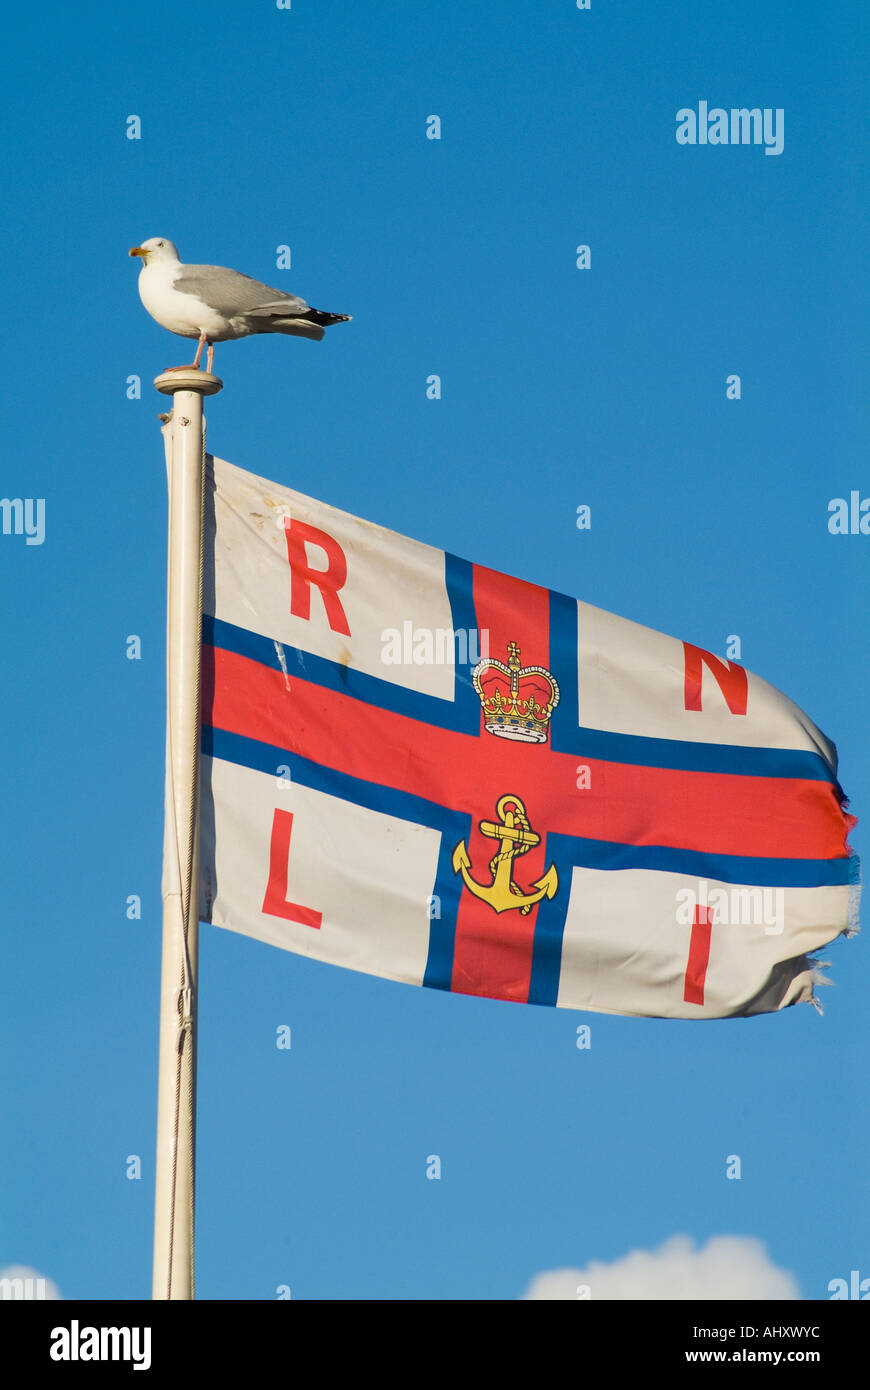 dh RNLI flag FLAG UK Seagull sitting on Royal National Lifeboat Institution flag - Stock Image